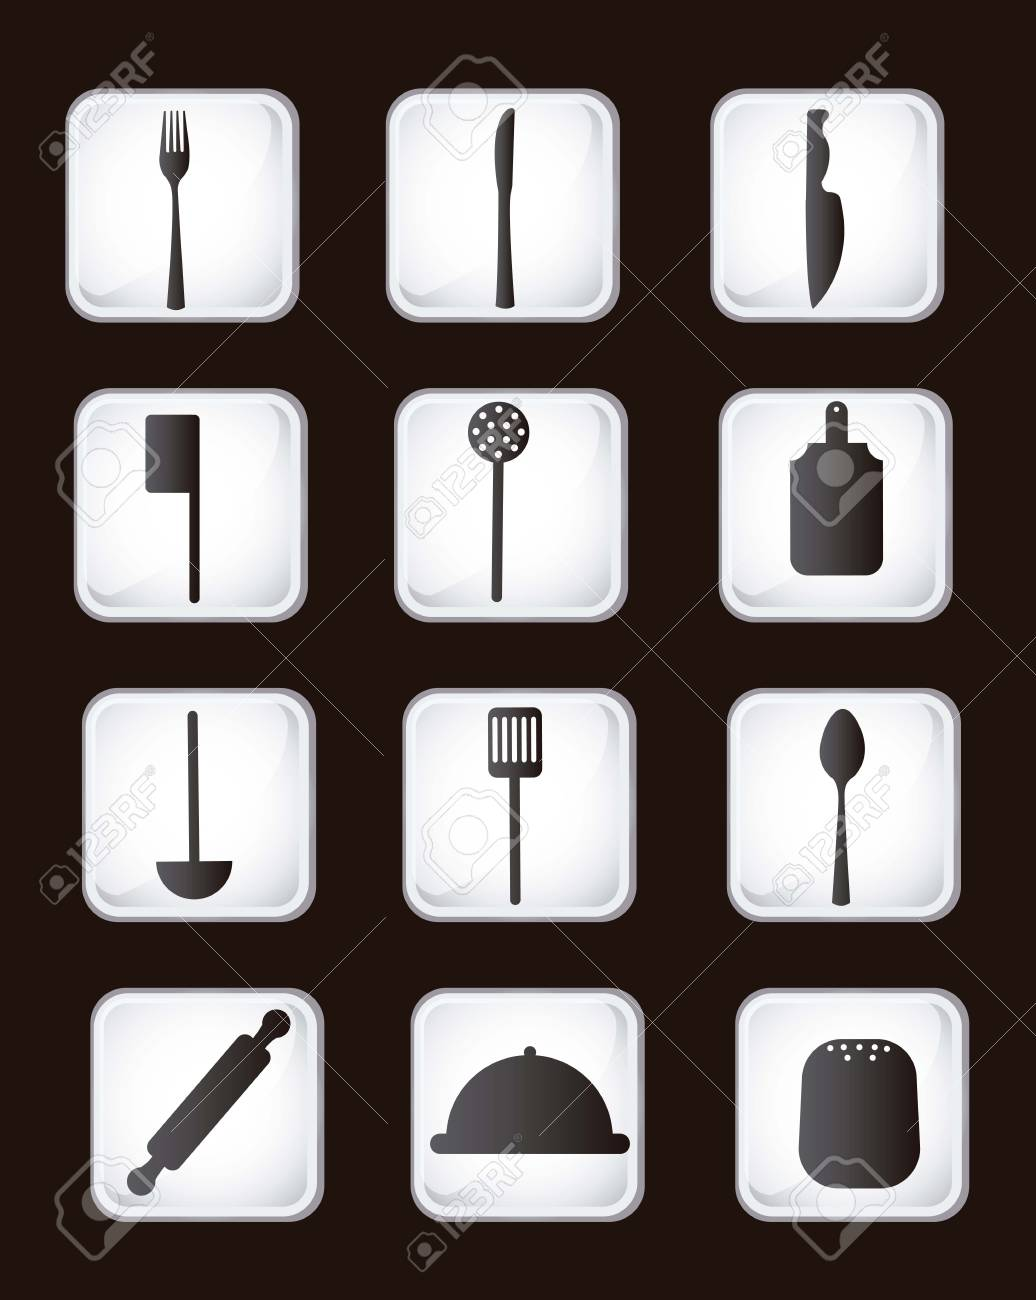 cutlery icons over vintage background. vector illustration Stock Vector - 16841098